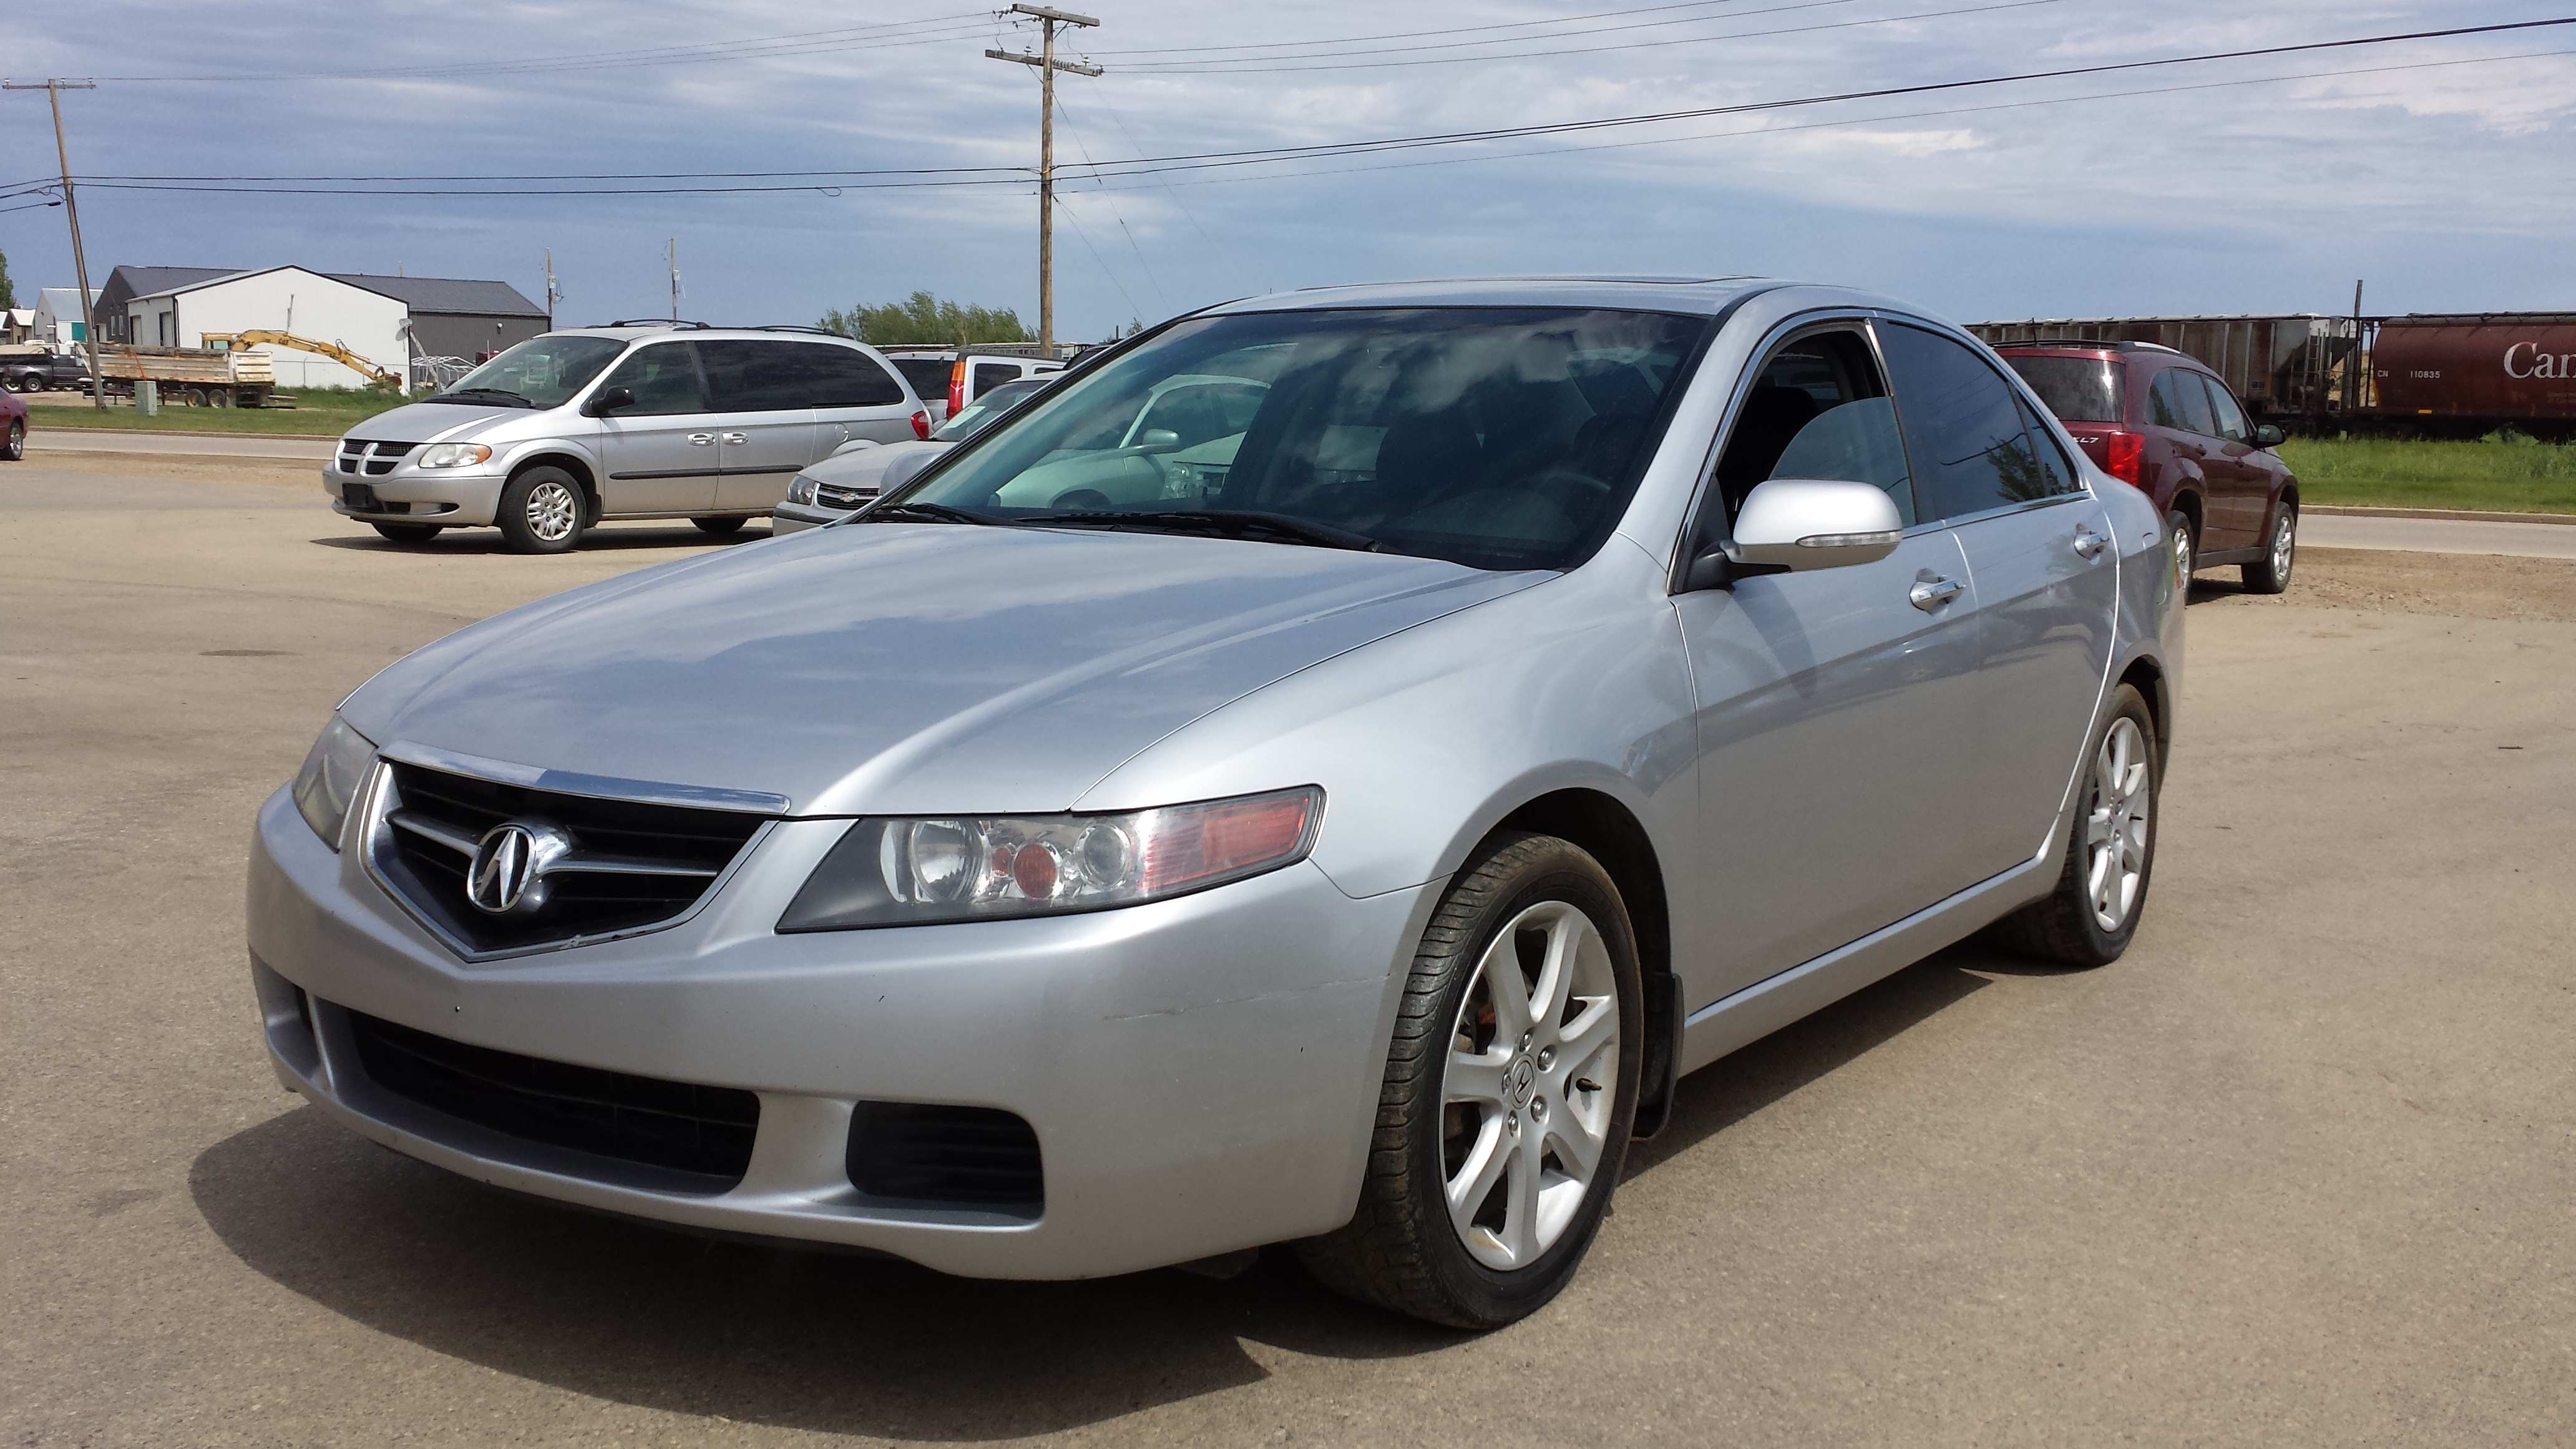 motors always less traveled road the furious tsx for sale acura take fast